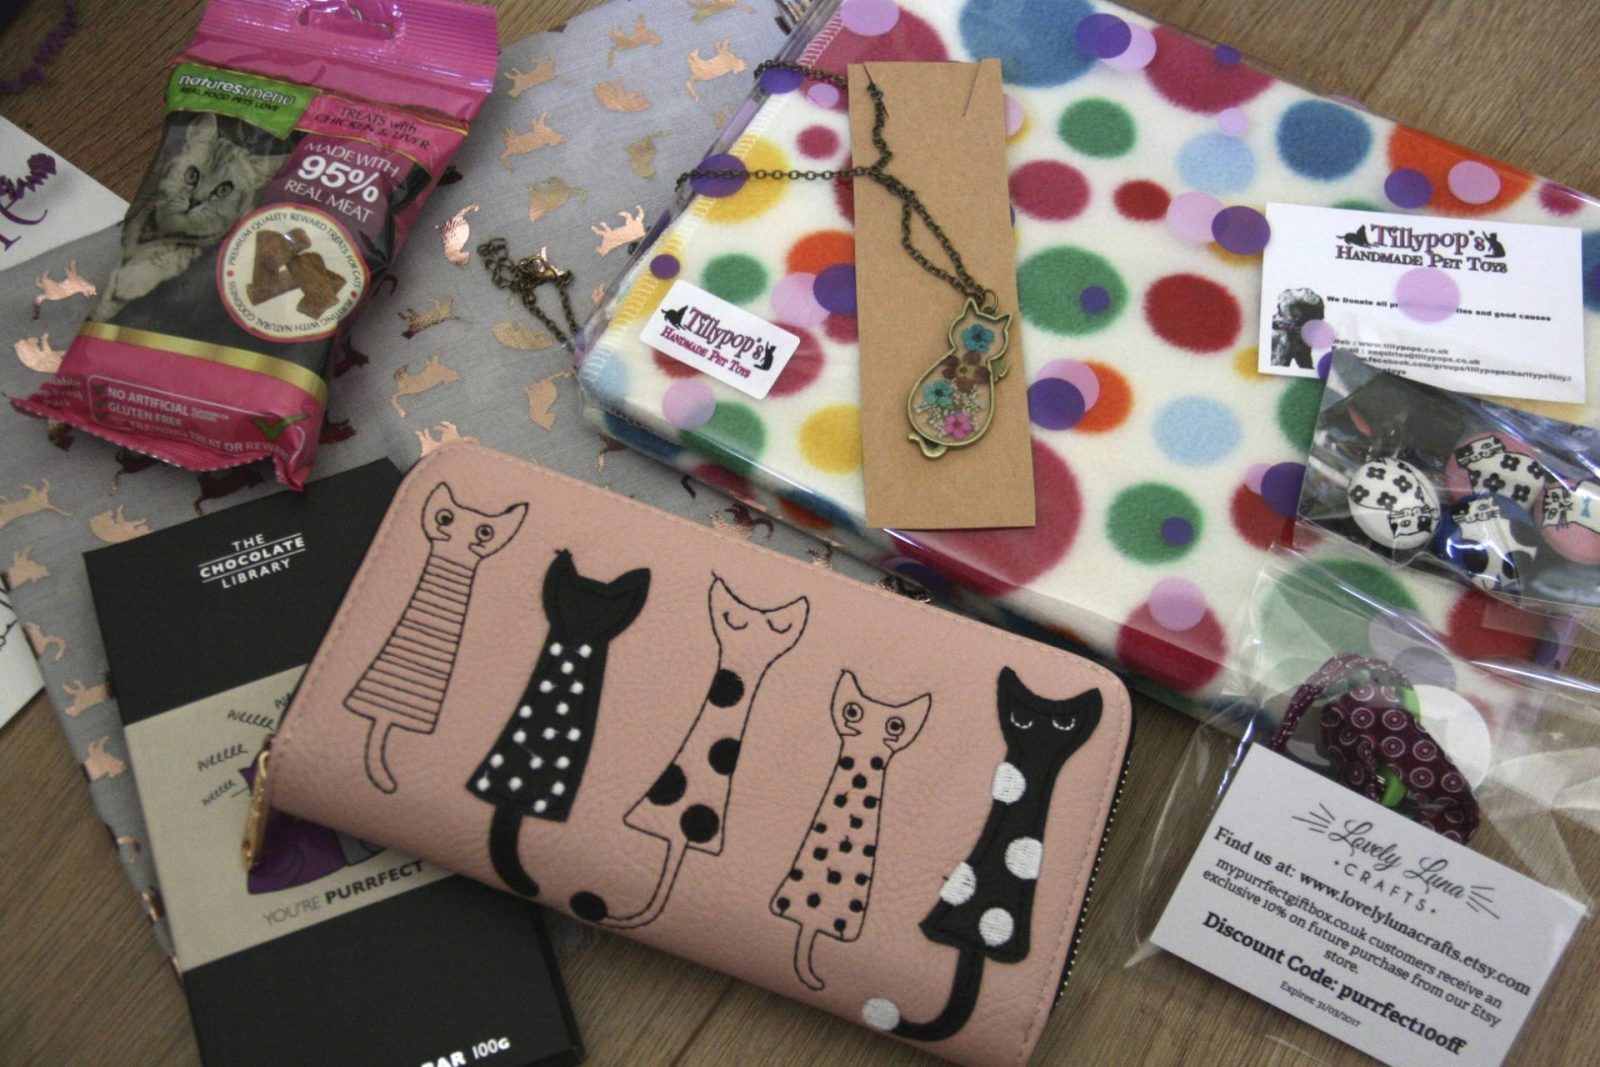 My Purrfect Gift Box - Spring Into Style